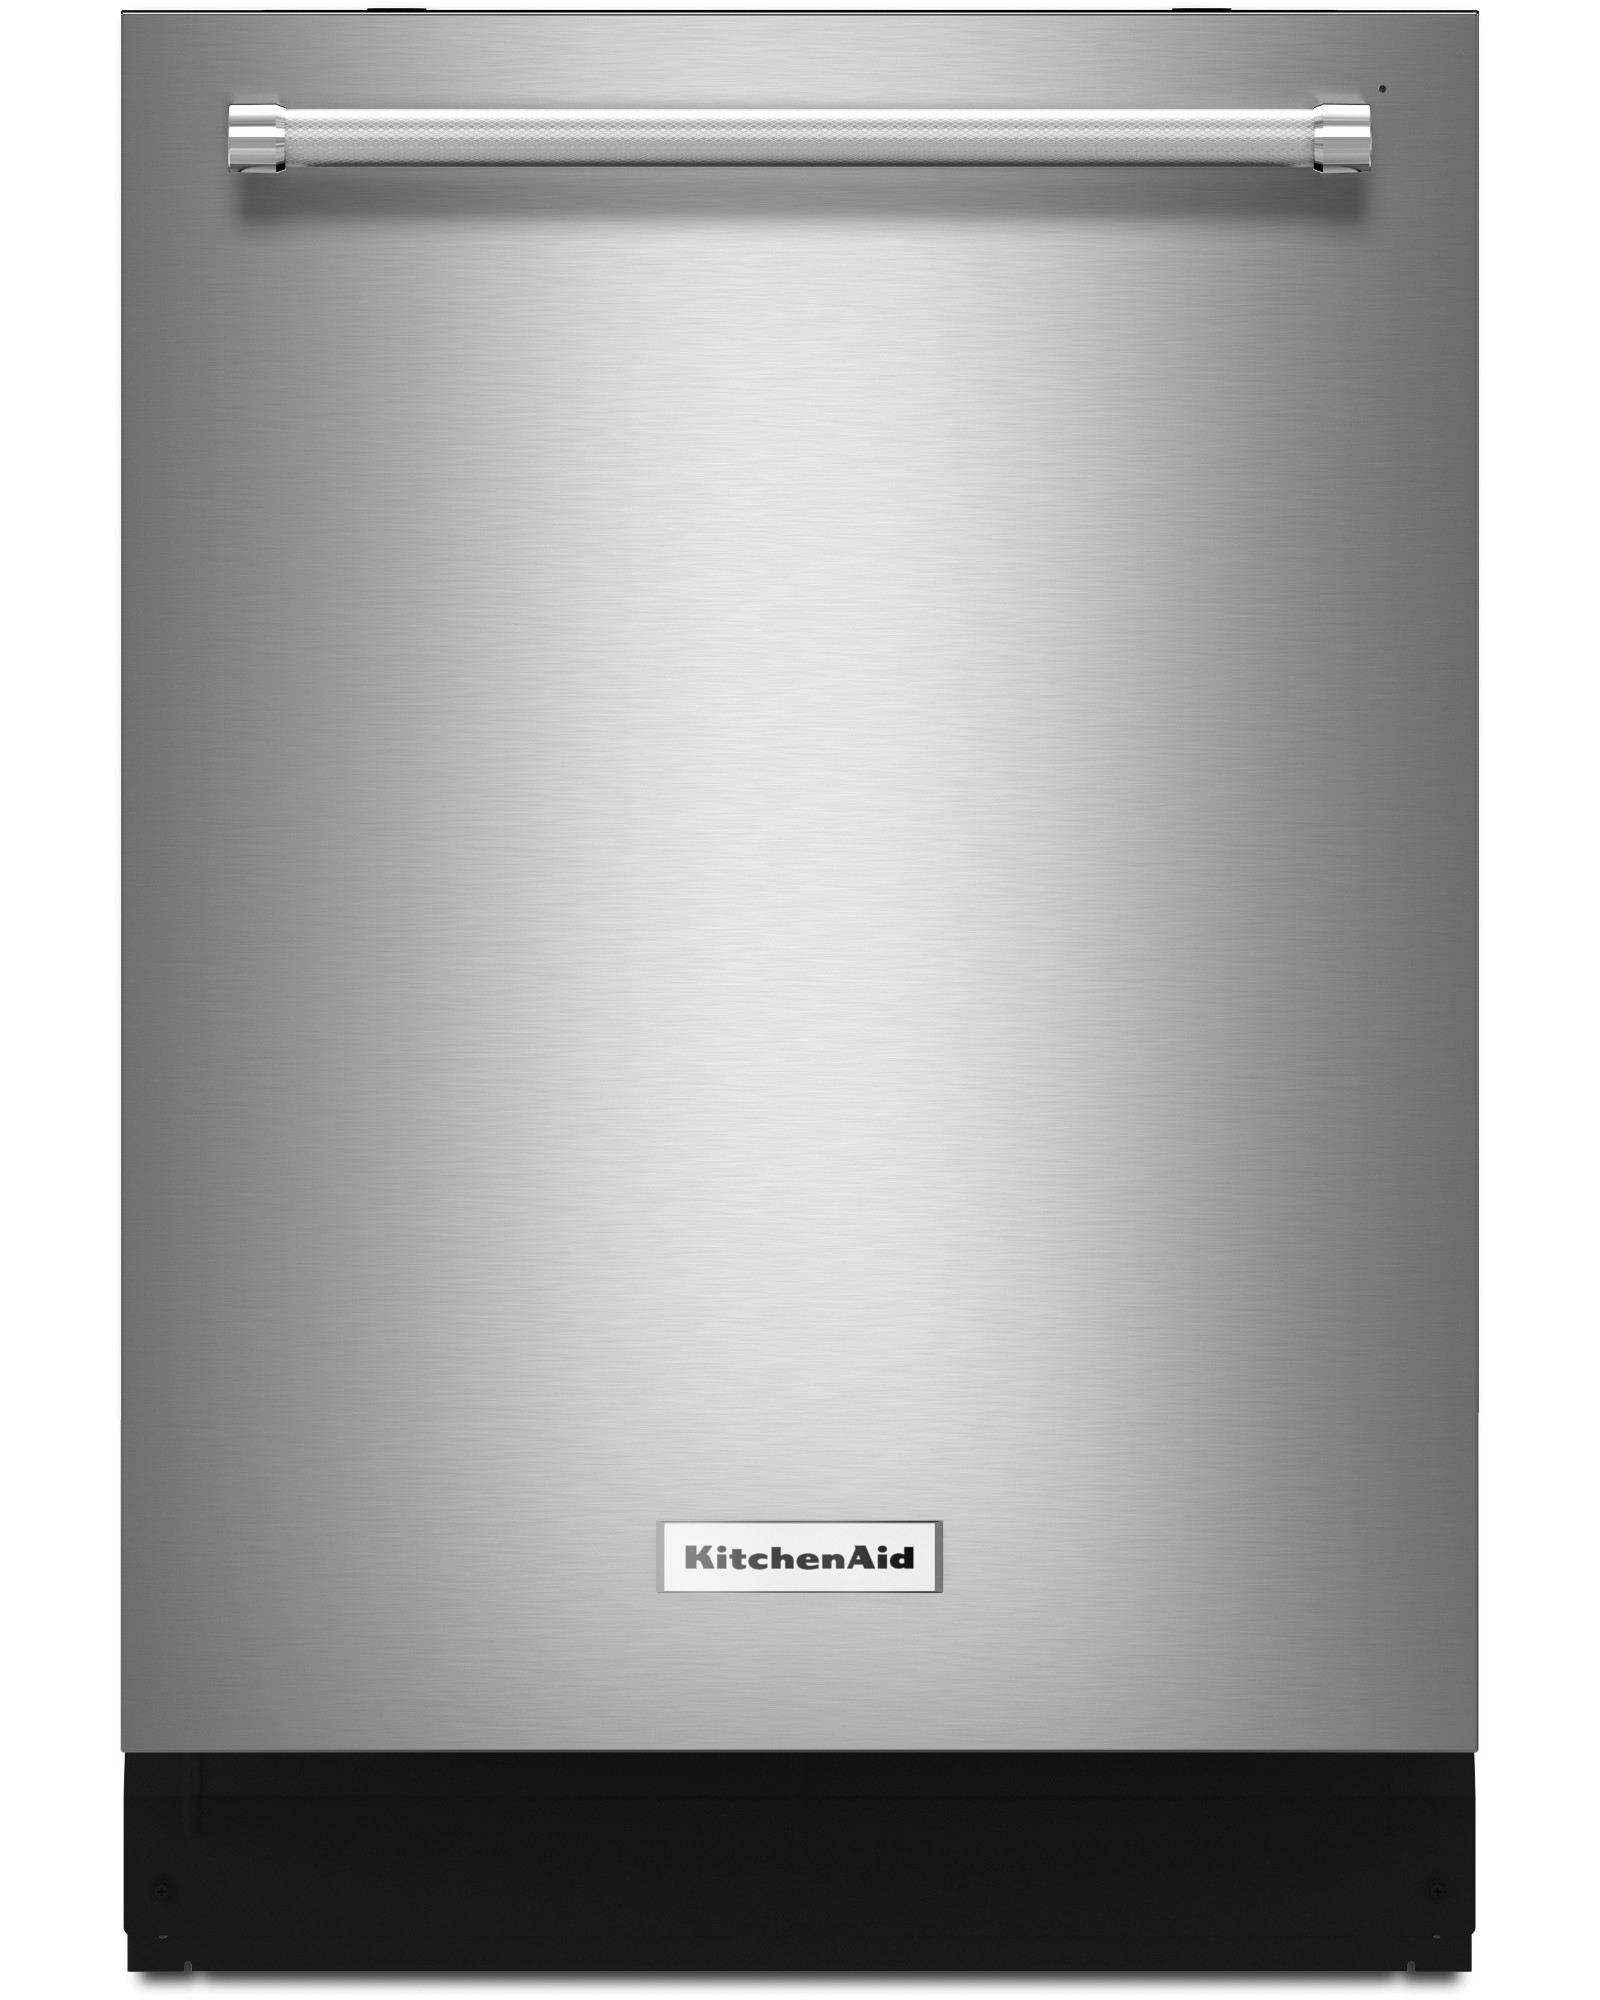 KitchenAid KDTE204ESS 24 Top Control Built-In Dishwasher - Stainless Steel